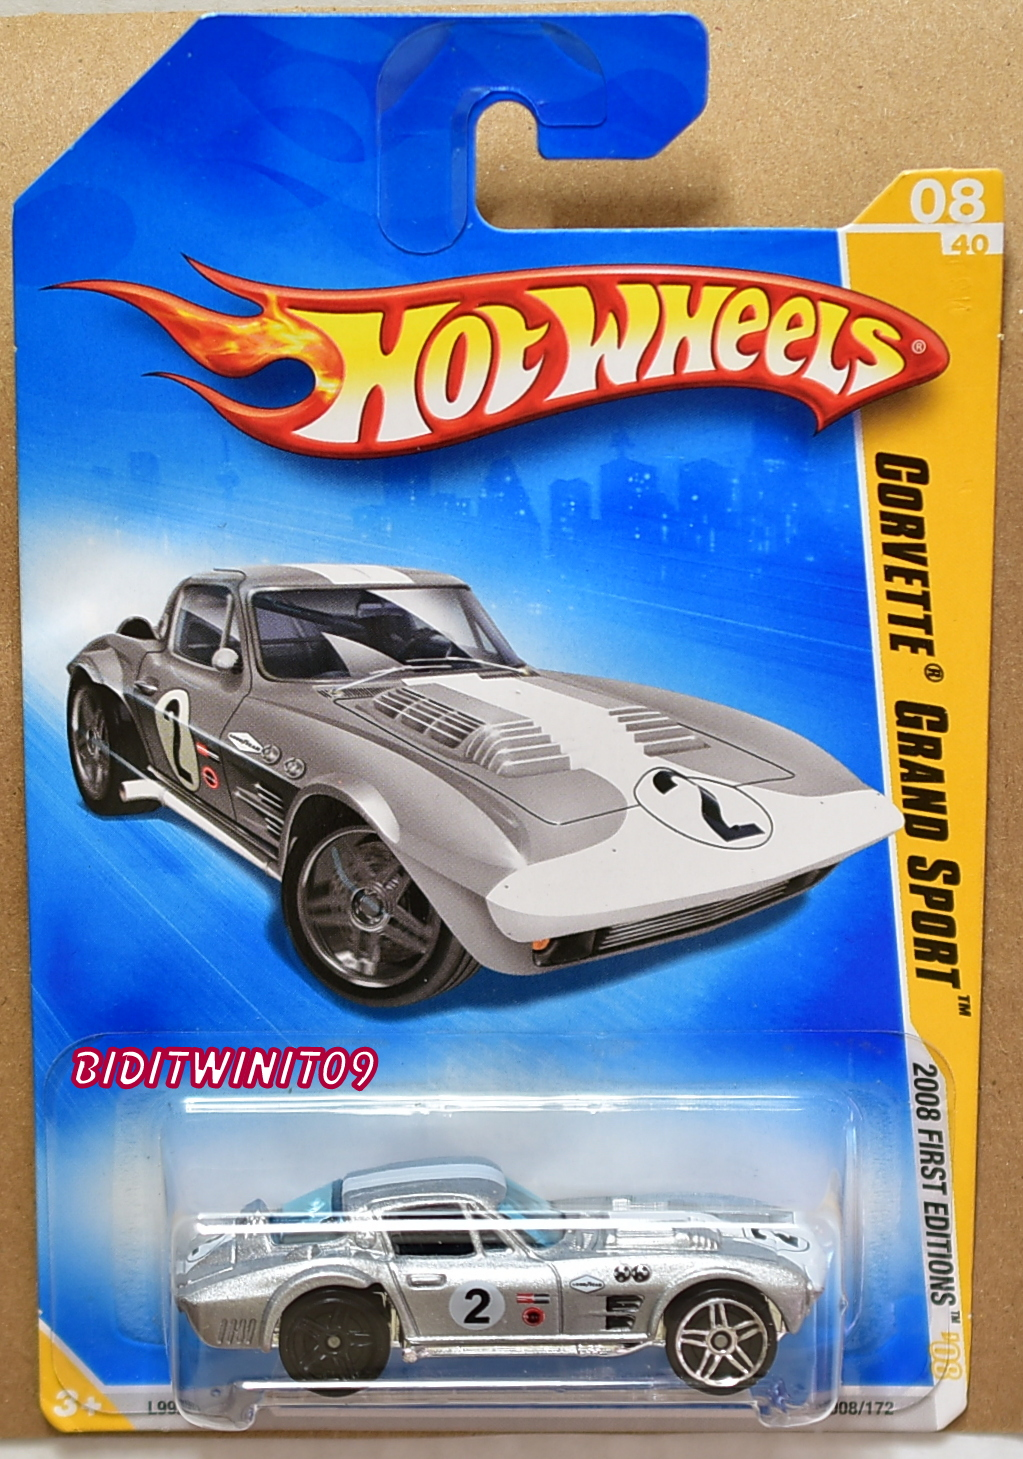 HOT WHEELS 2008 FIRST EDITIONS CORVETTE GRAND SPORT WHEELS ERROR E+